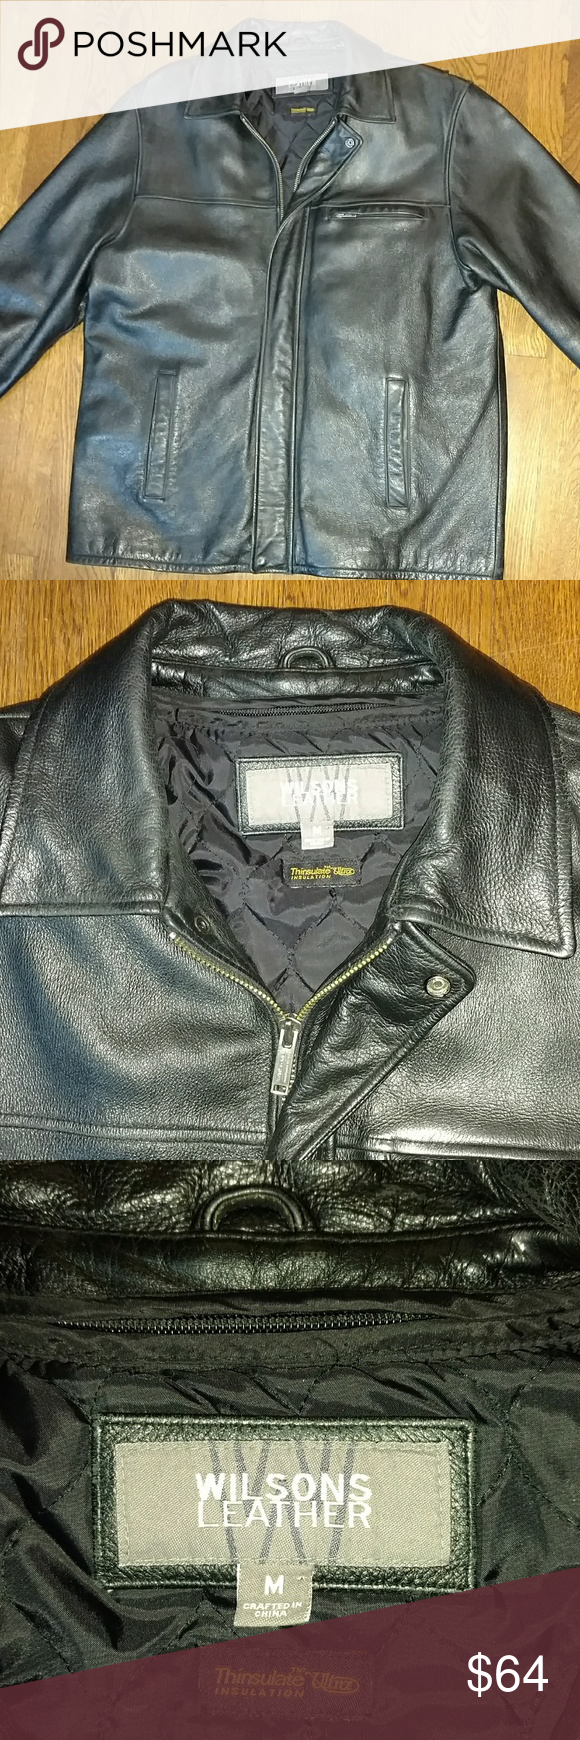 Wilsons leather coat In very good clean, no wear condition